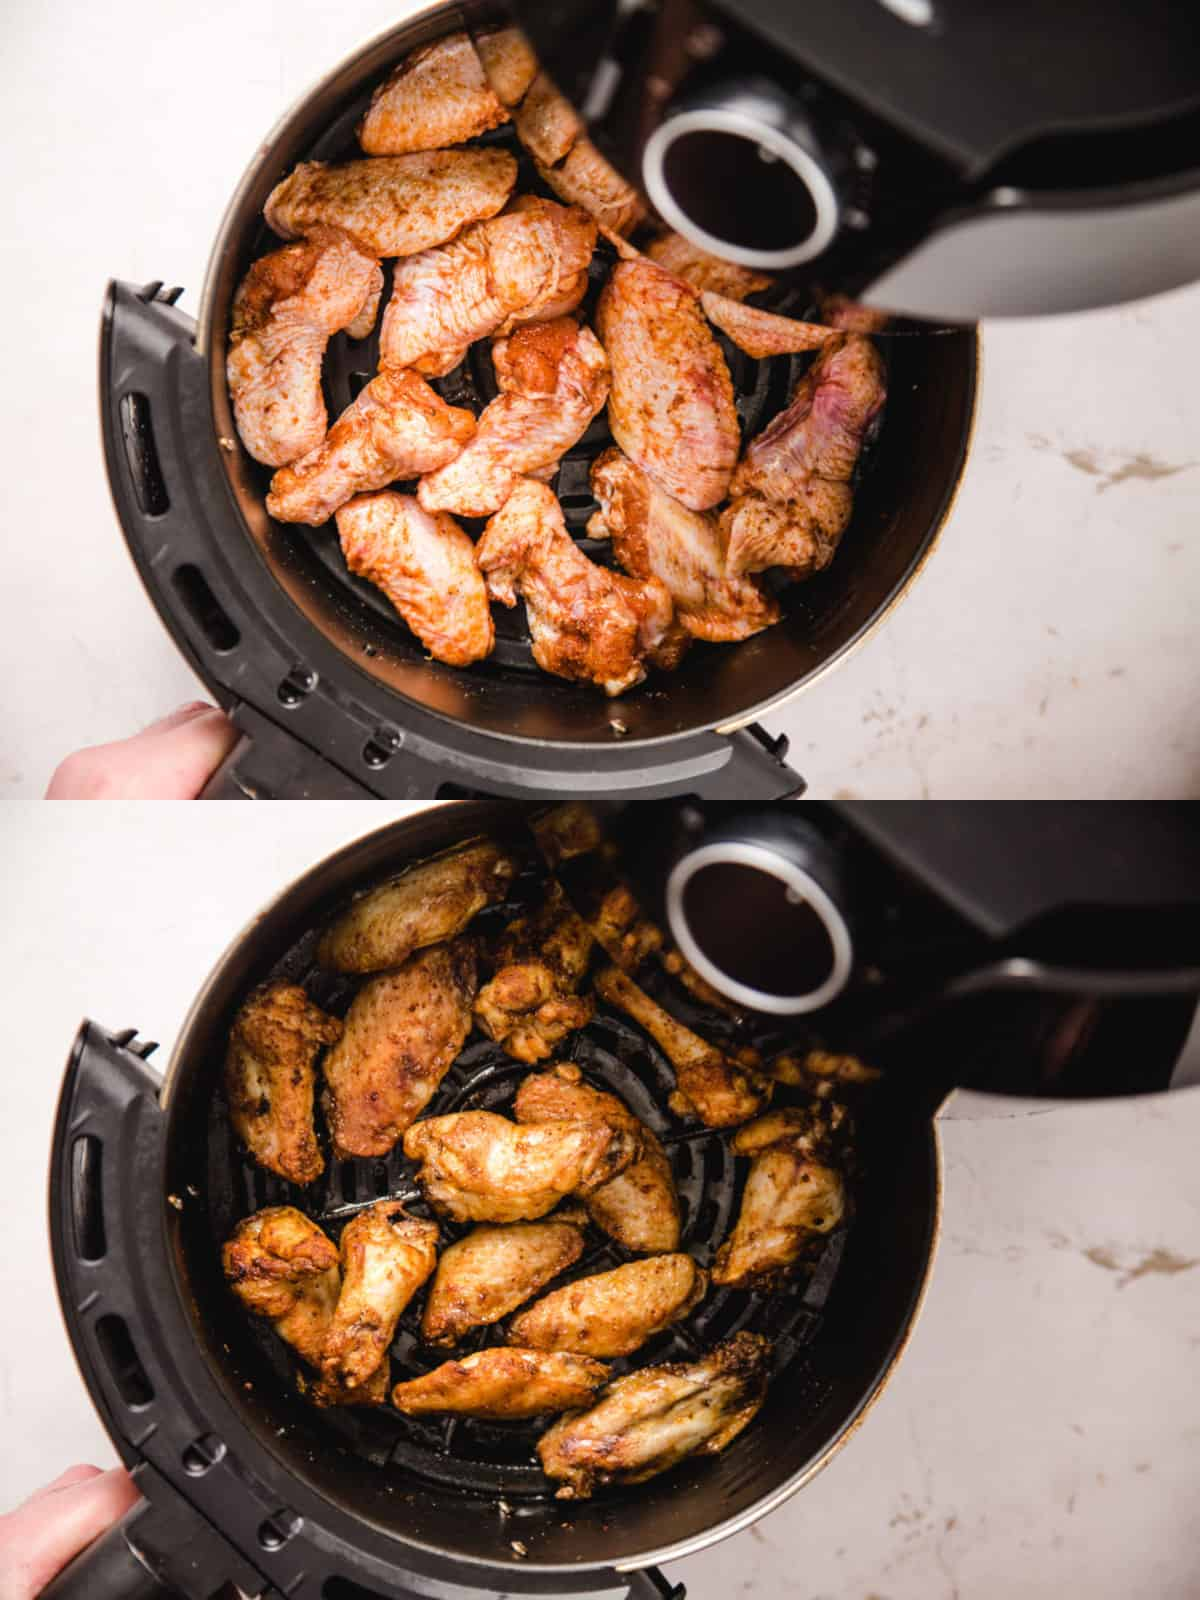 Two photos of the chicken wings in the air fryer basket before and after cooking.